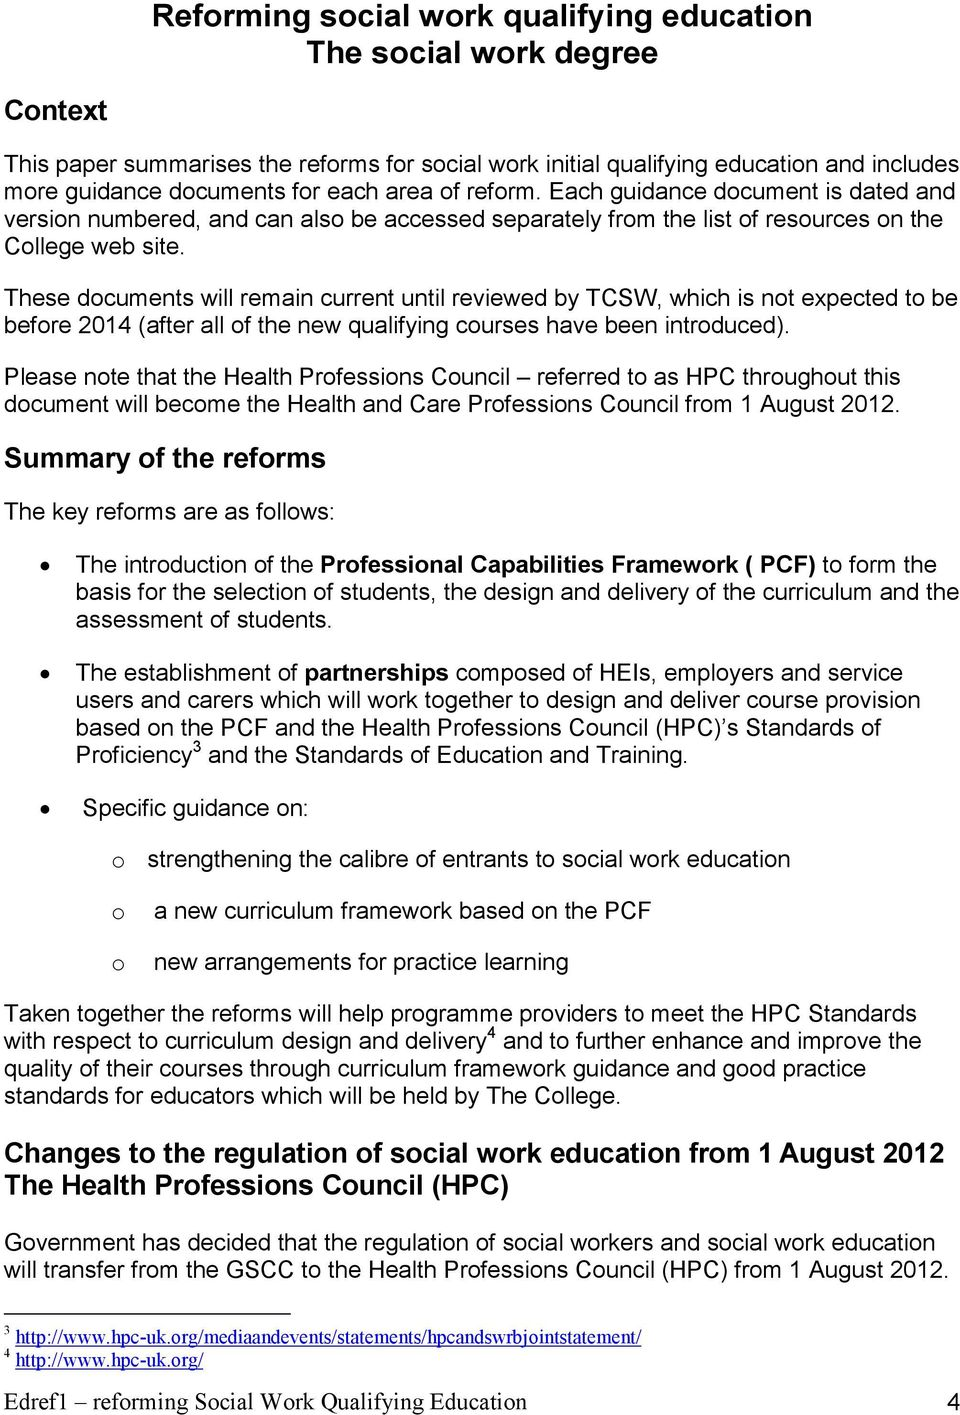 These documents will remain current until reviewed by TCSW, which is not expected to be before 2014 (after all of the new qualifying courses have been introduced).